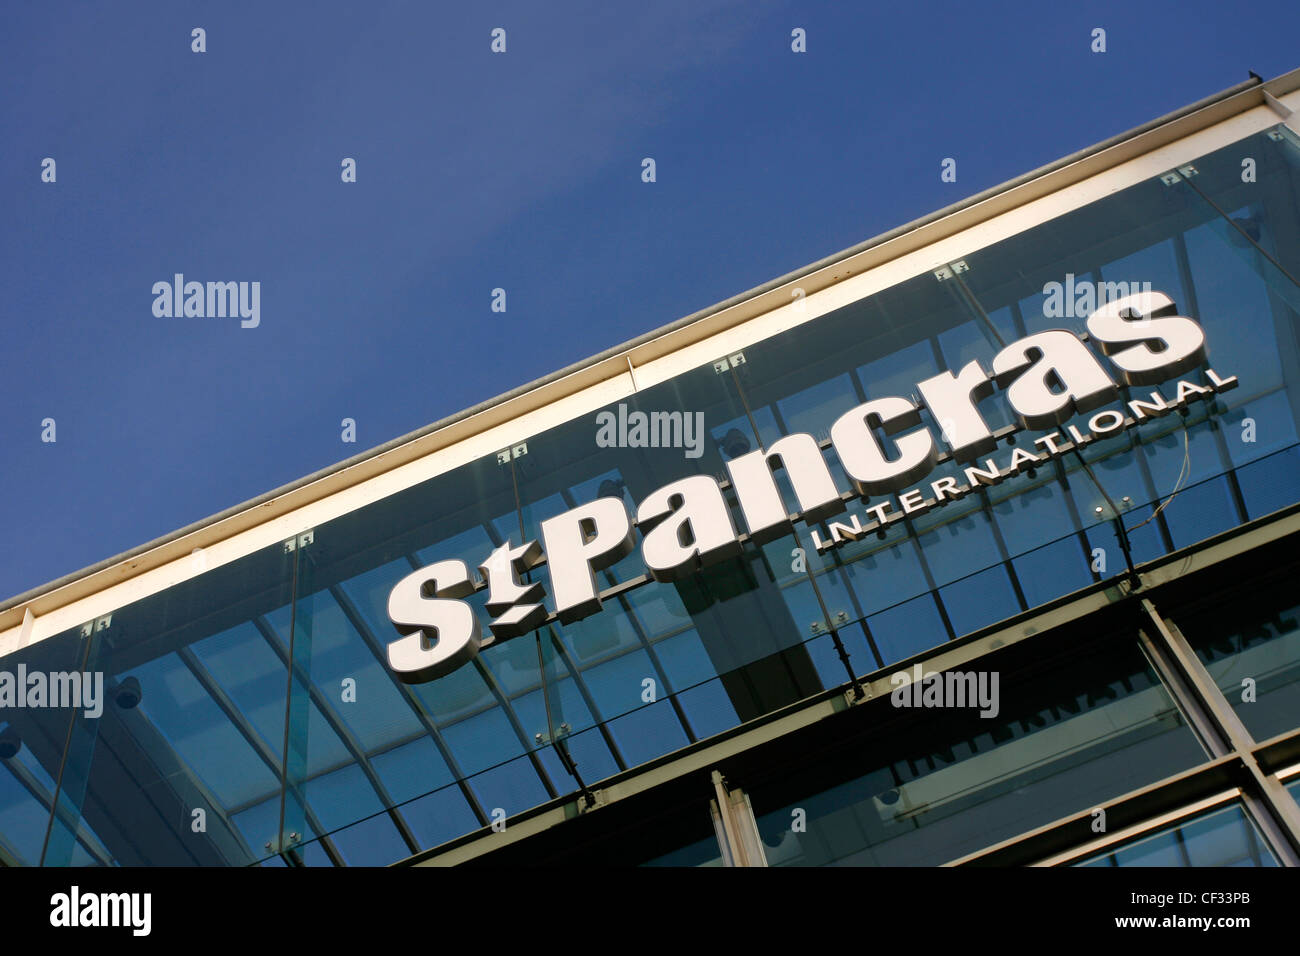 St Pancras International Station sign at the new home of Eurostar. - Stock Image